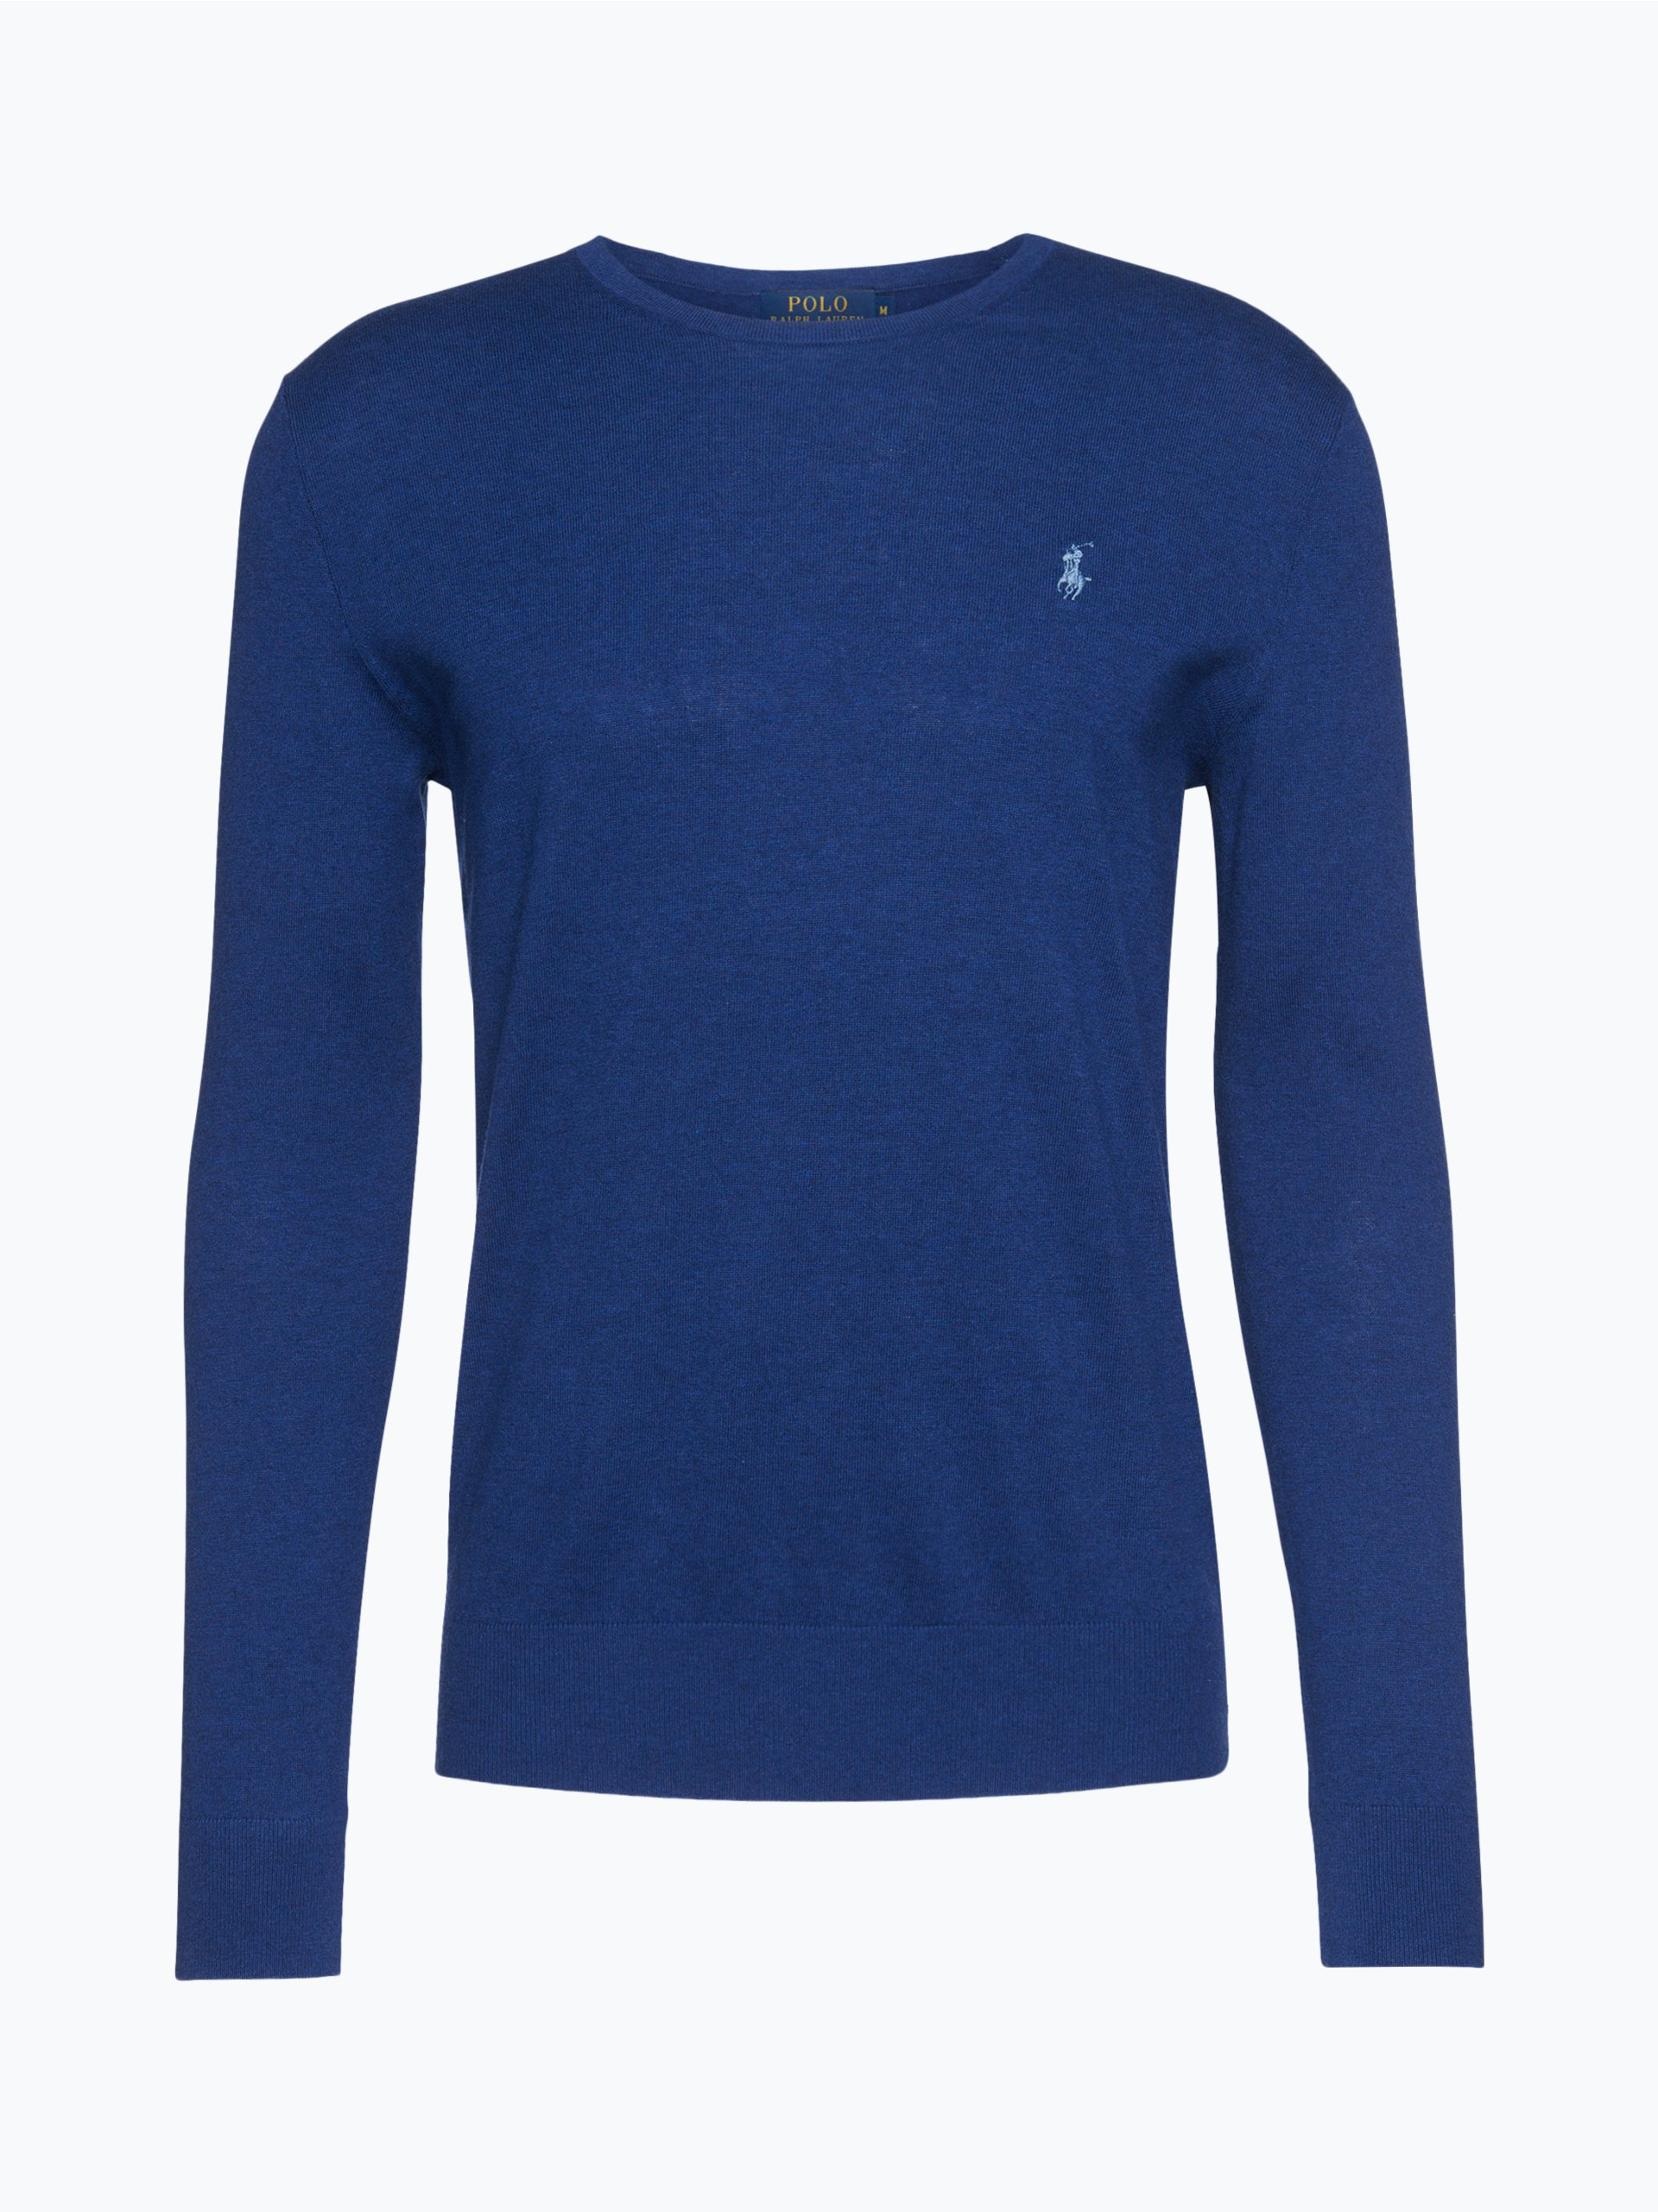 polo ralph lauren herren pullover mit cashmere anteil blau uni online kaufen vangraaf com. Black Bedroom Furniture Sets. Home Design Ideas